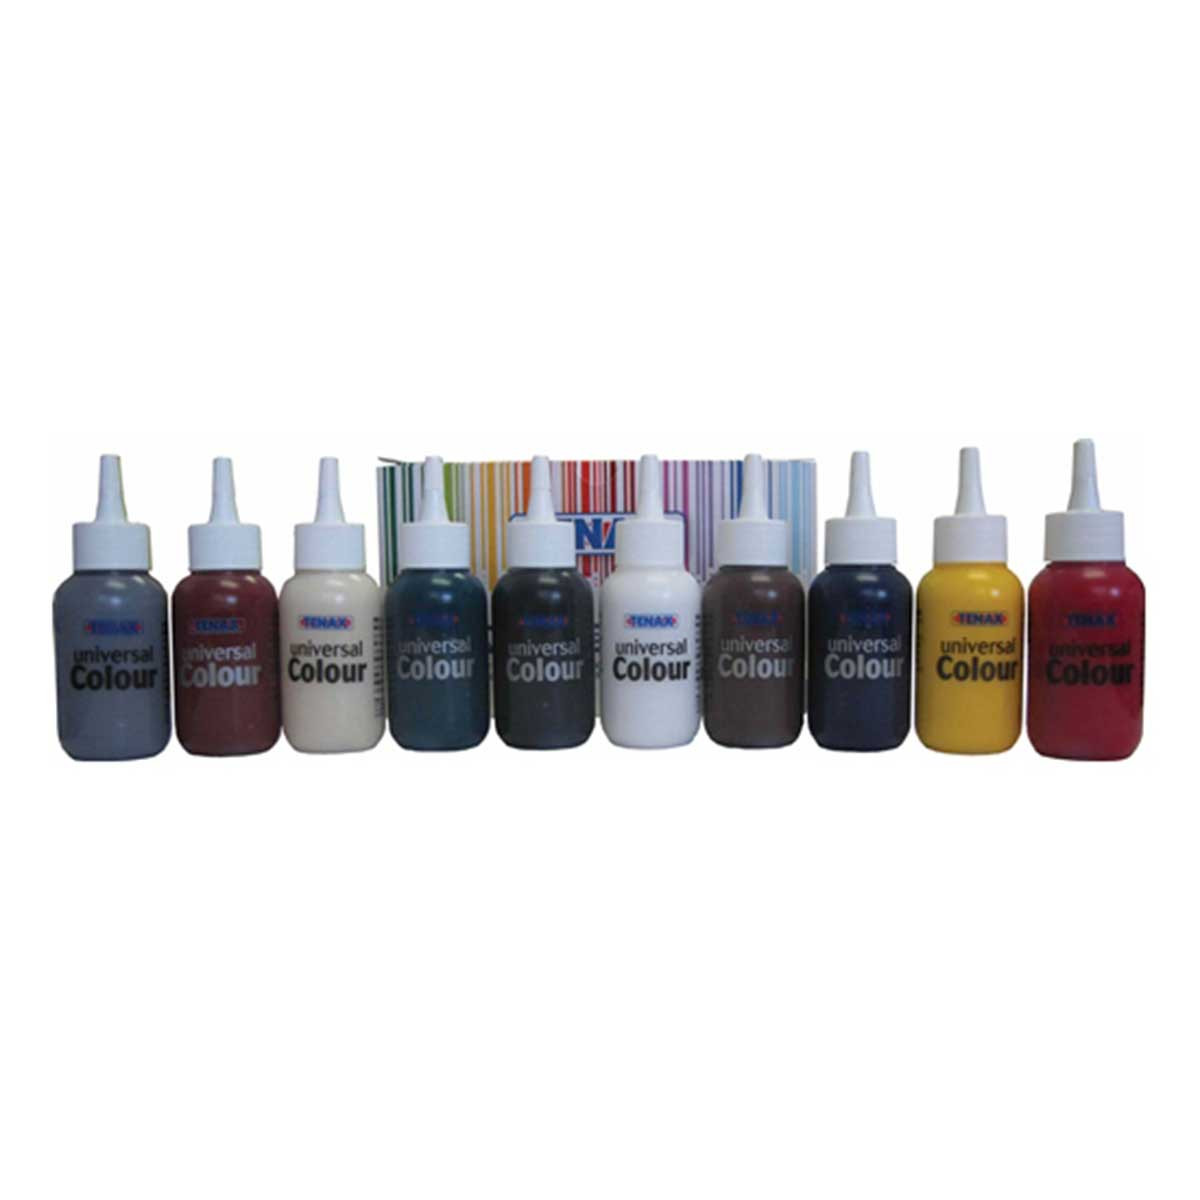 Tenax Universal Color 10 pcs Kit for Polyester and Epoxy Glue